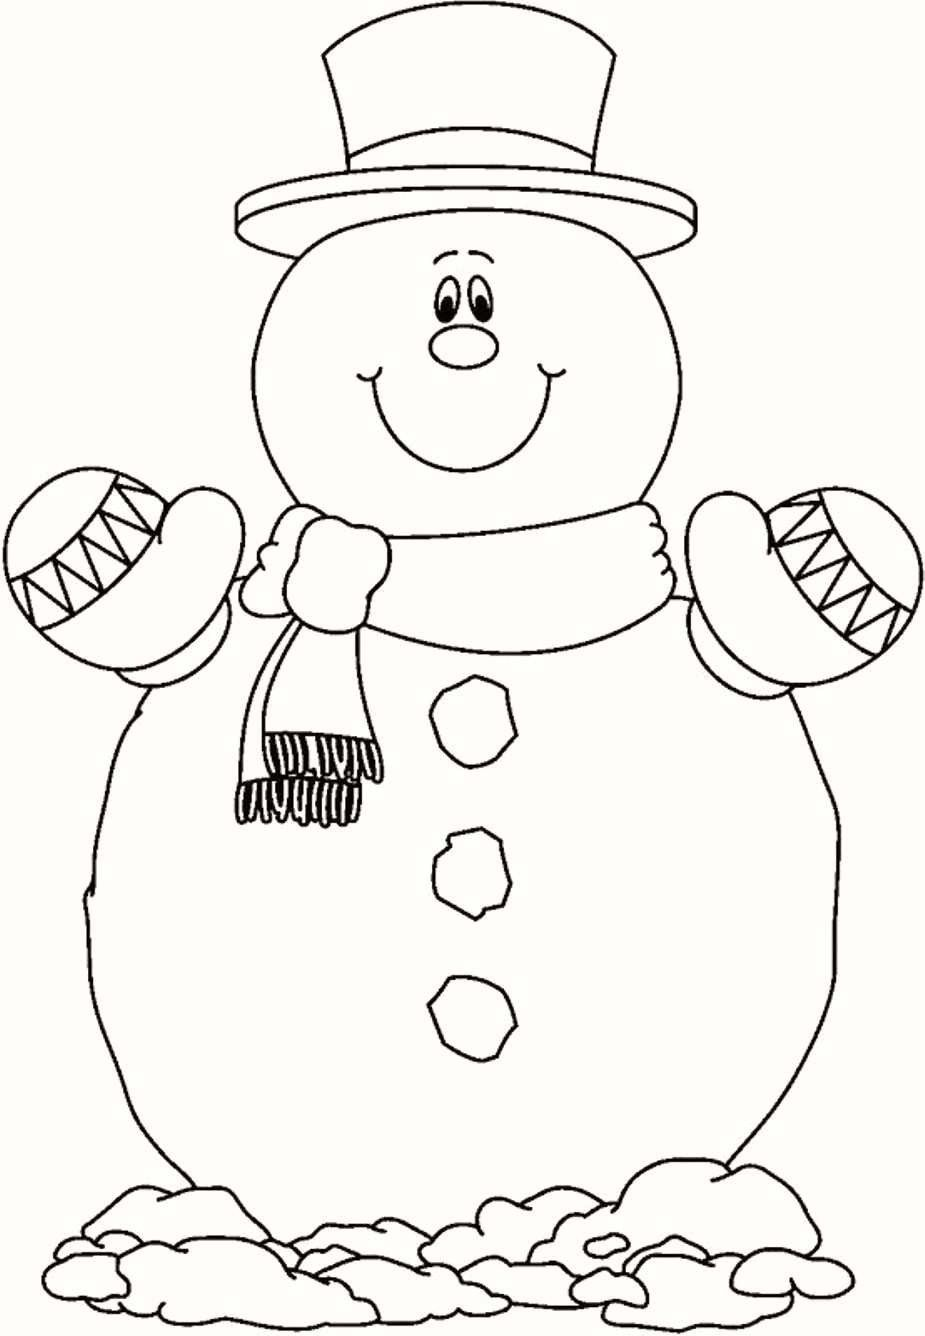 24 Wonderful Picture Of Frosty The Snowman Coloring Pages Davemelillo Com Snowman Coloring Pages Coloring Pages Winter Printable Snowman